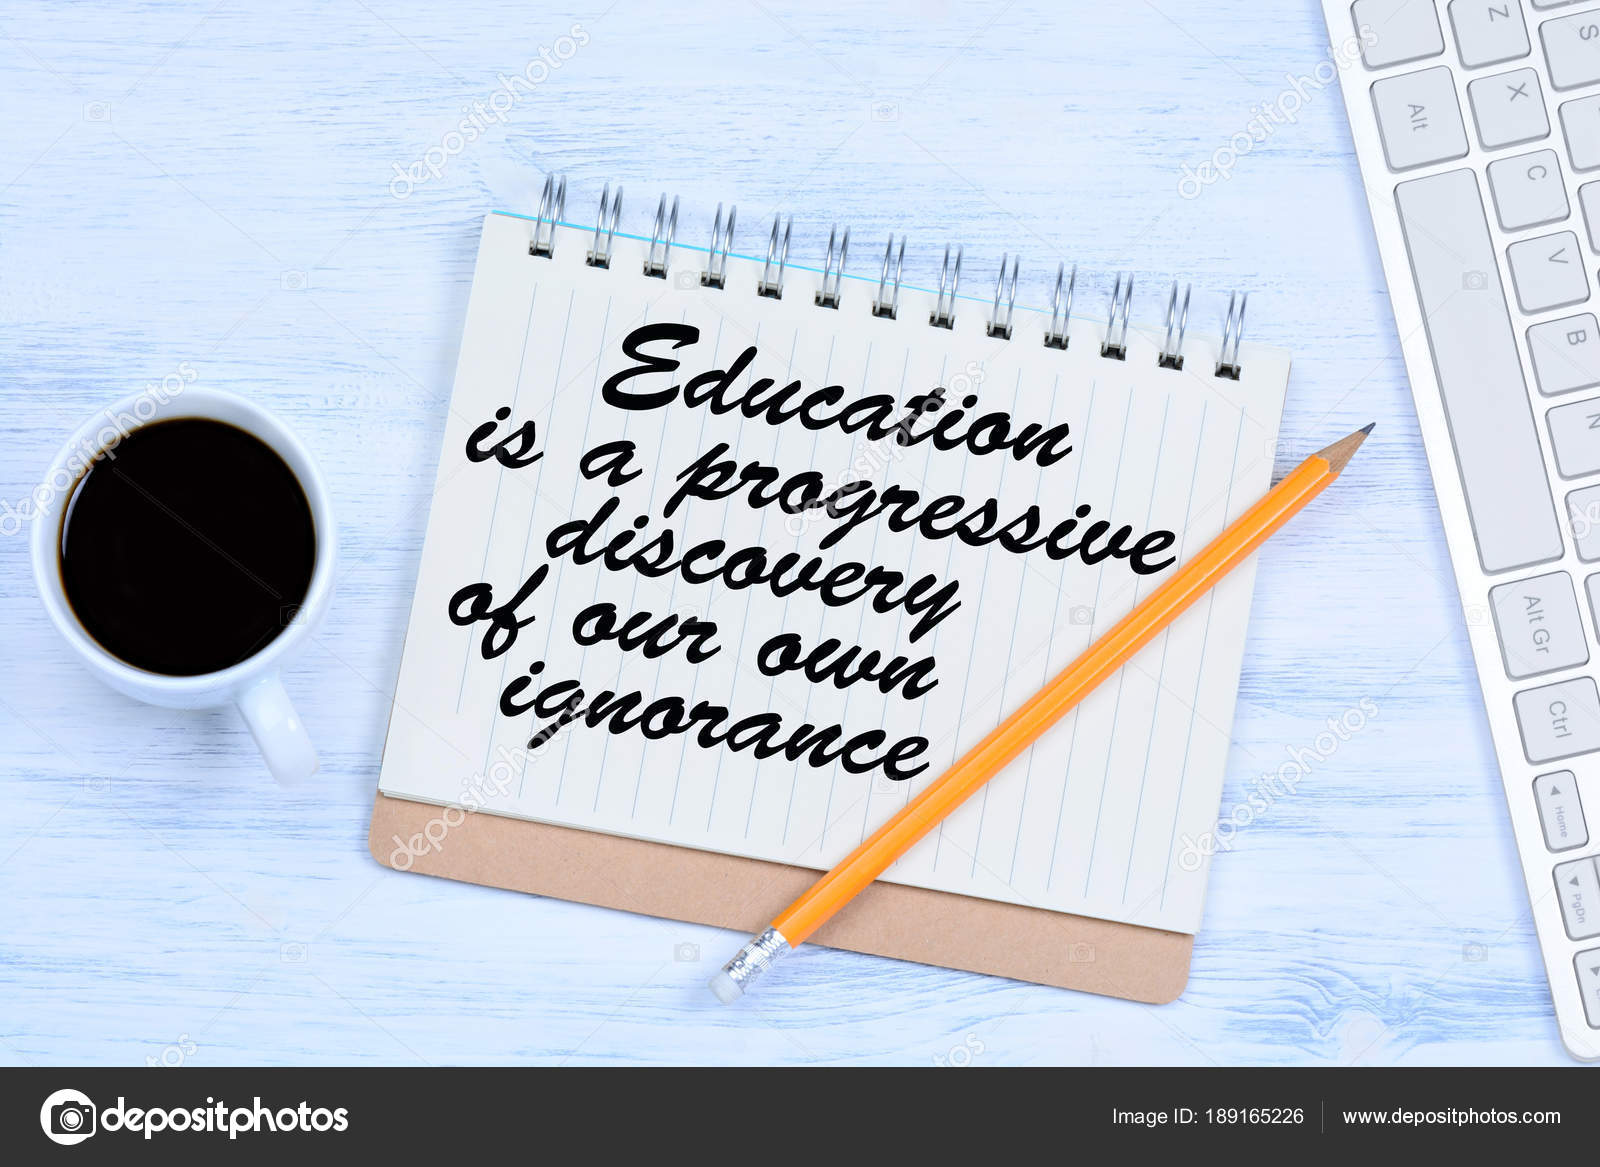 Education Is A Progressive Discovery Of Our Own Ignorance Text On